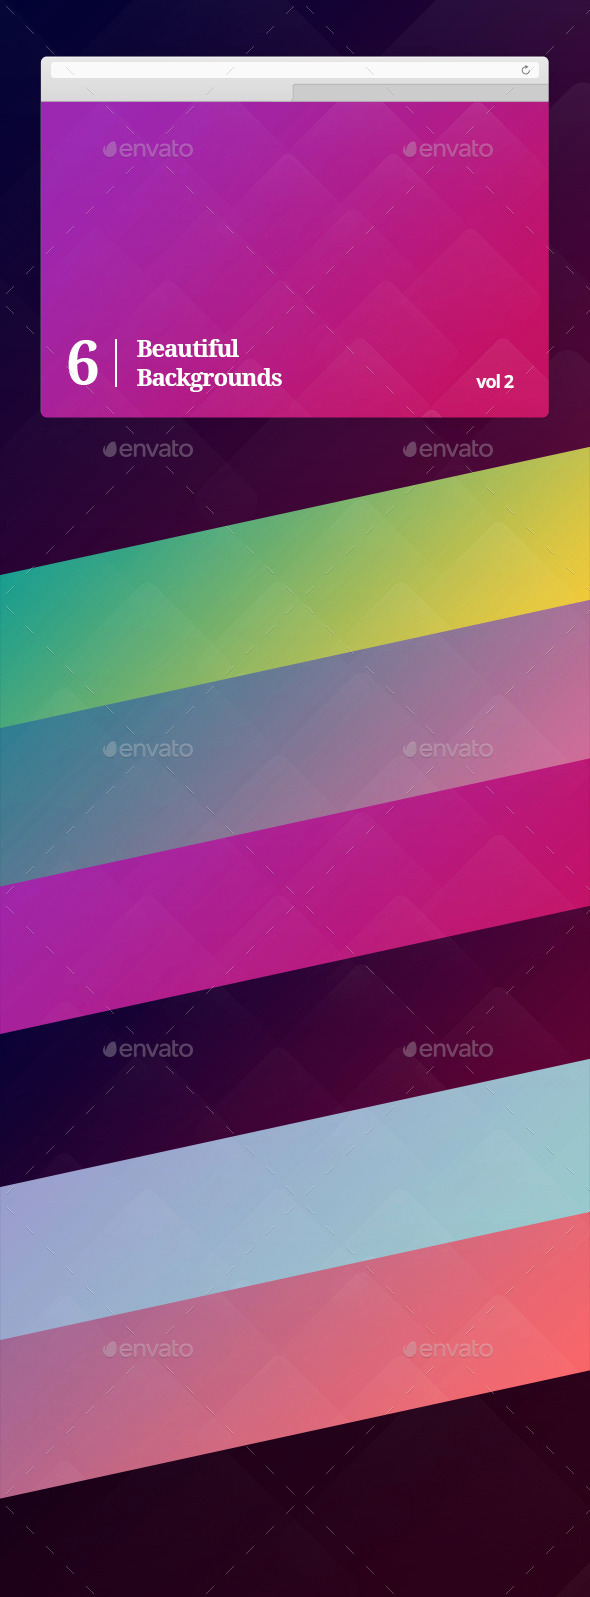 GraphicRiver Beautiful Backgrounds Vol 2 10057635